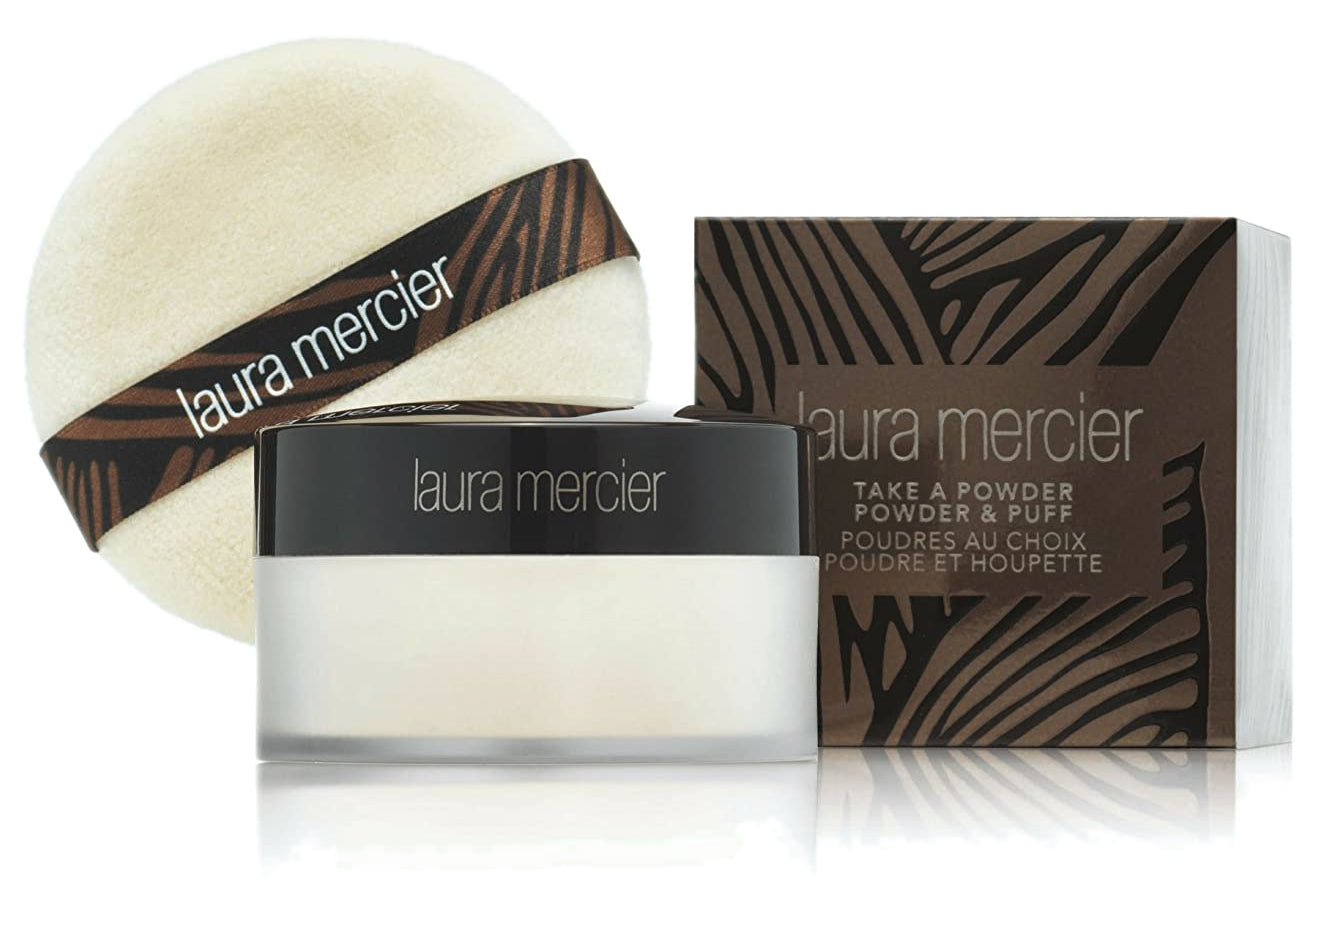 Laura Mercier Take a Powder Translucent Loose Setting Powder - Powder & Puff 29g